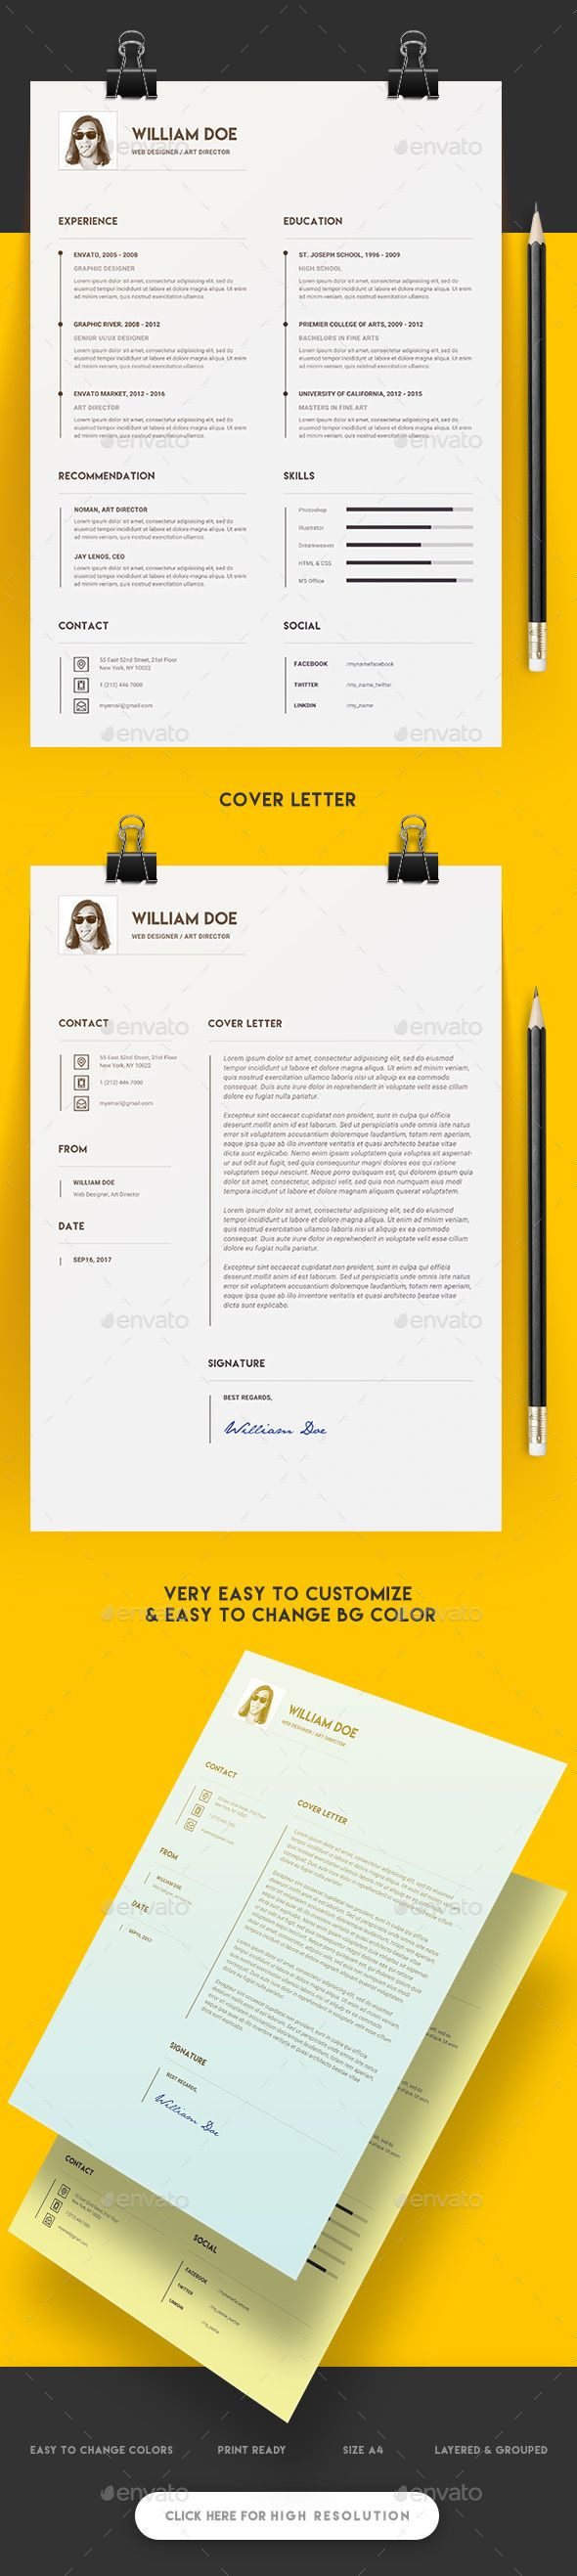 Minimal and Clean Resume  — PSD Template #swiss #elegant-design • Download ➝ https://graphicriver.net/item/minimal-and-clean-resume/18102784?ref=pxcr